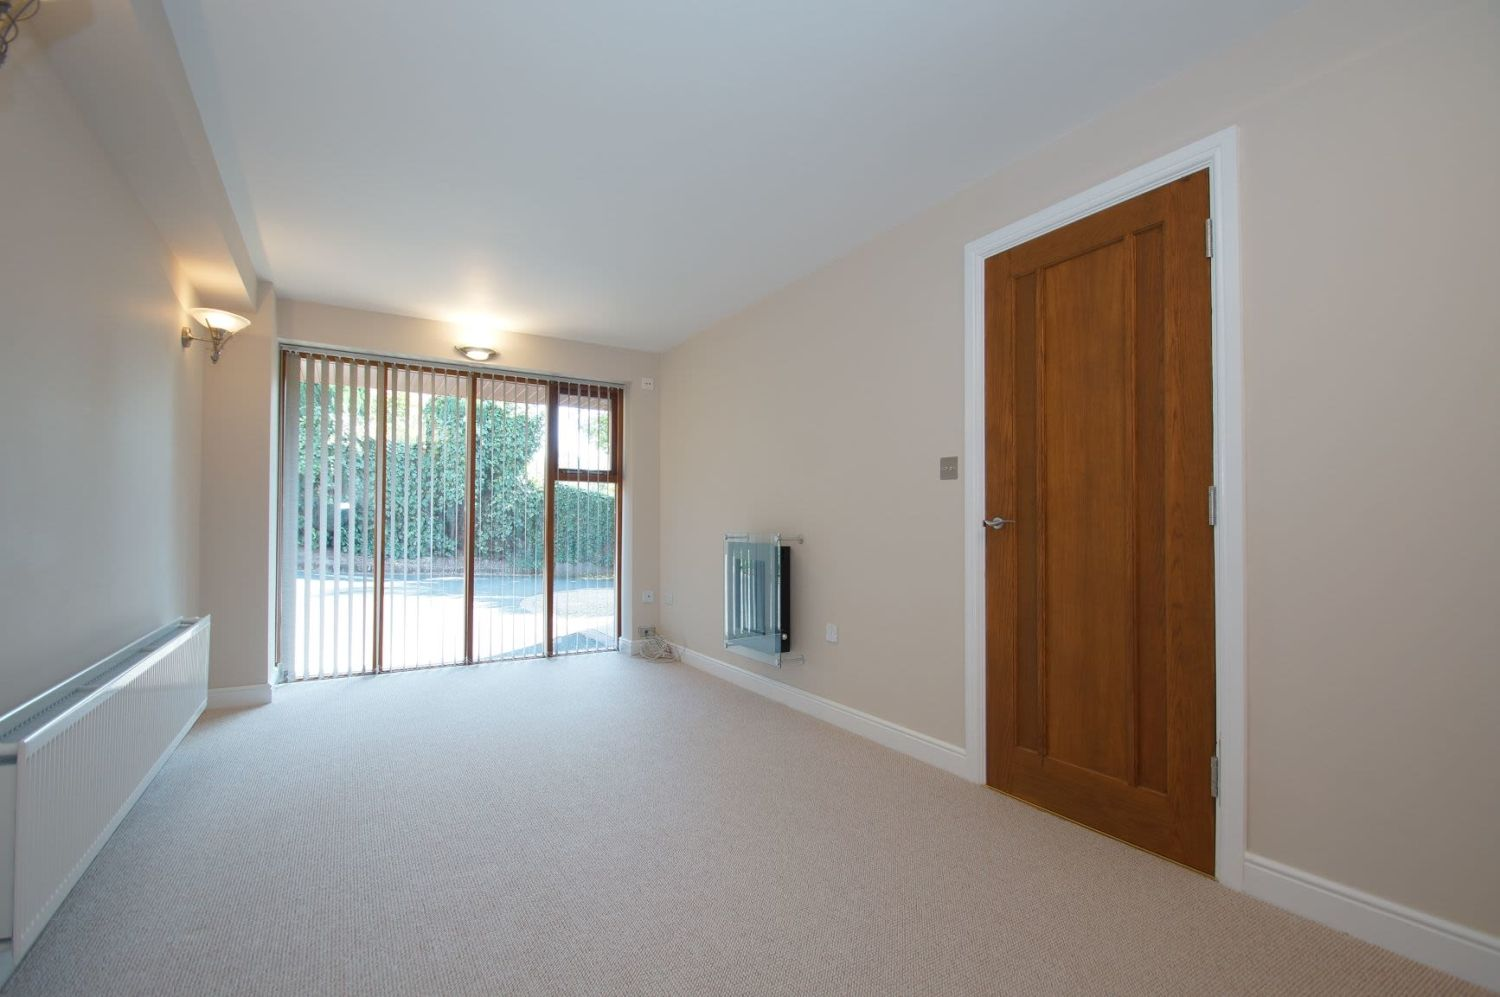 4 bed detached for sale in Acre Lane, Webheath 6